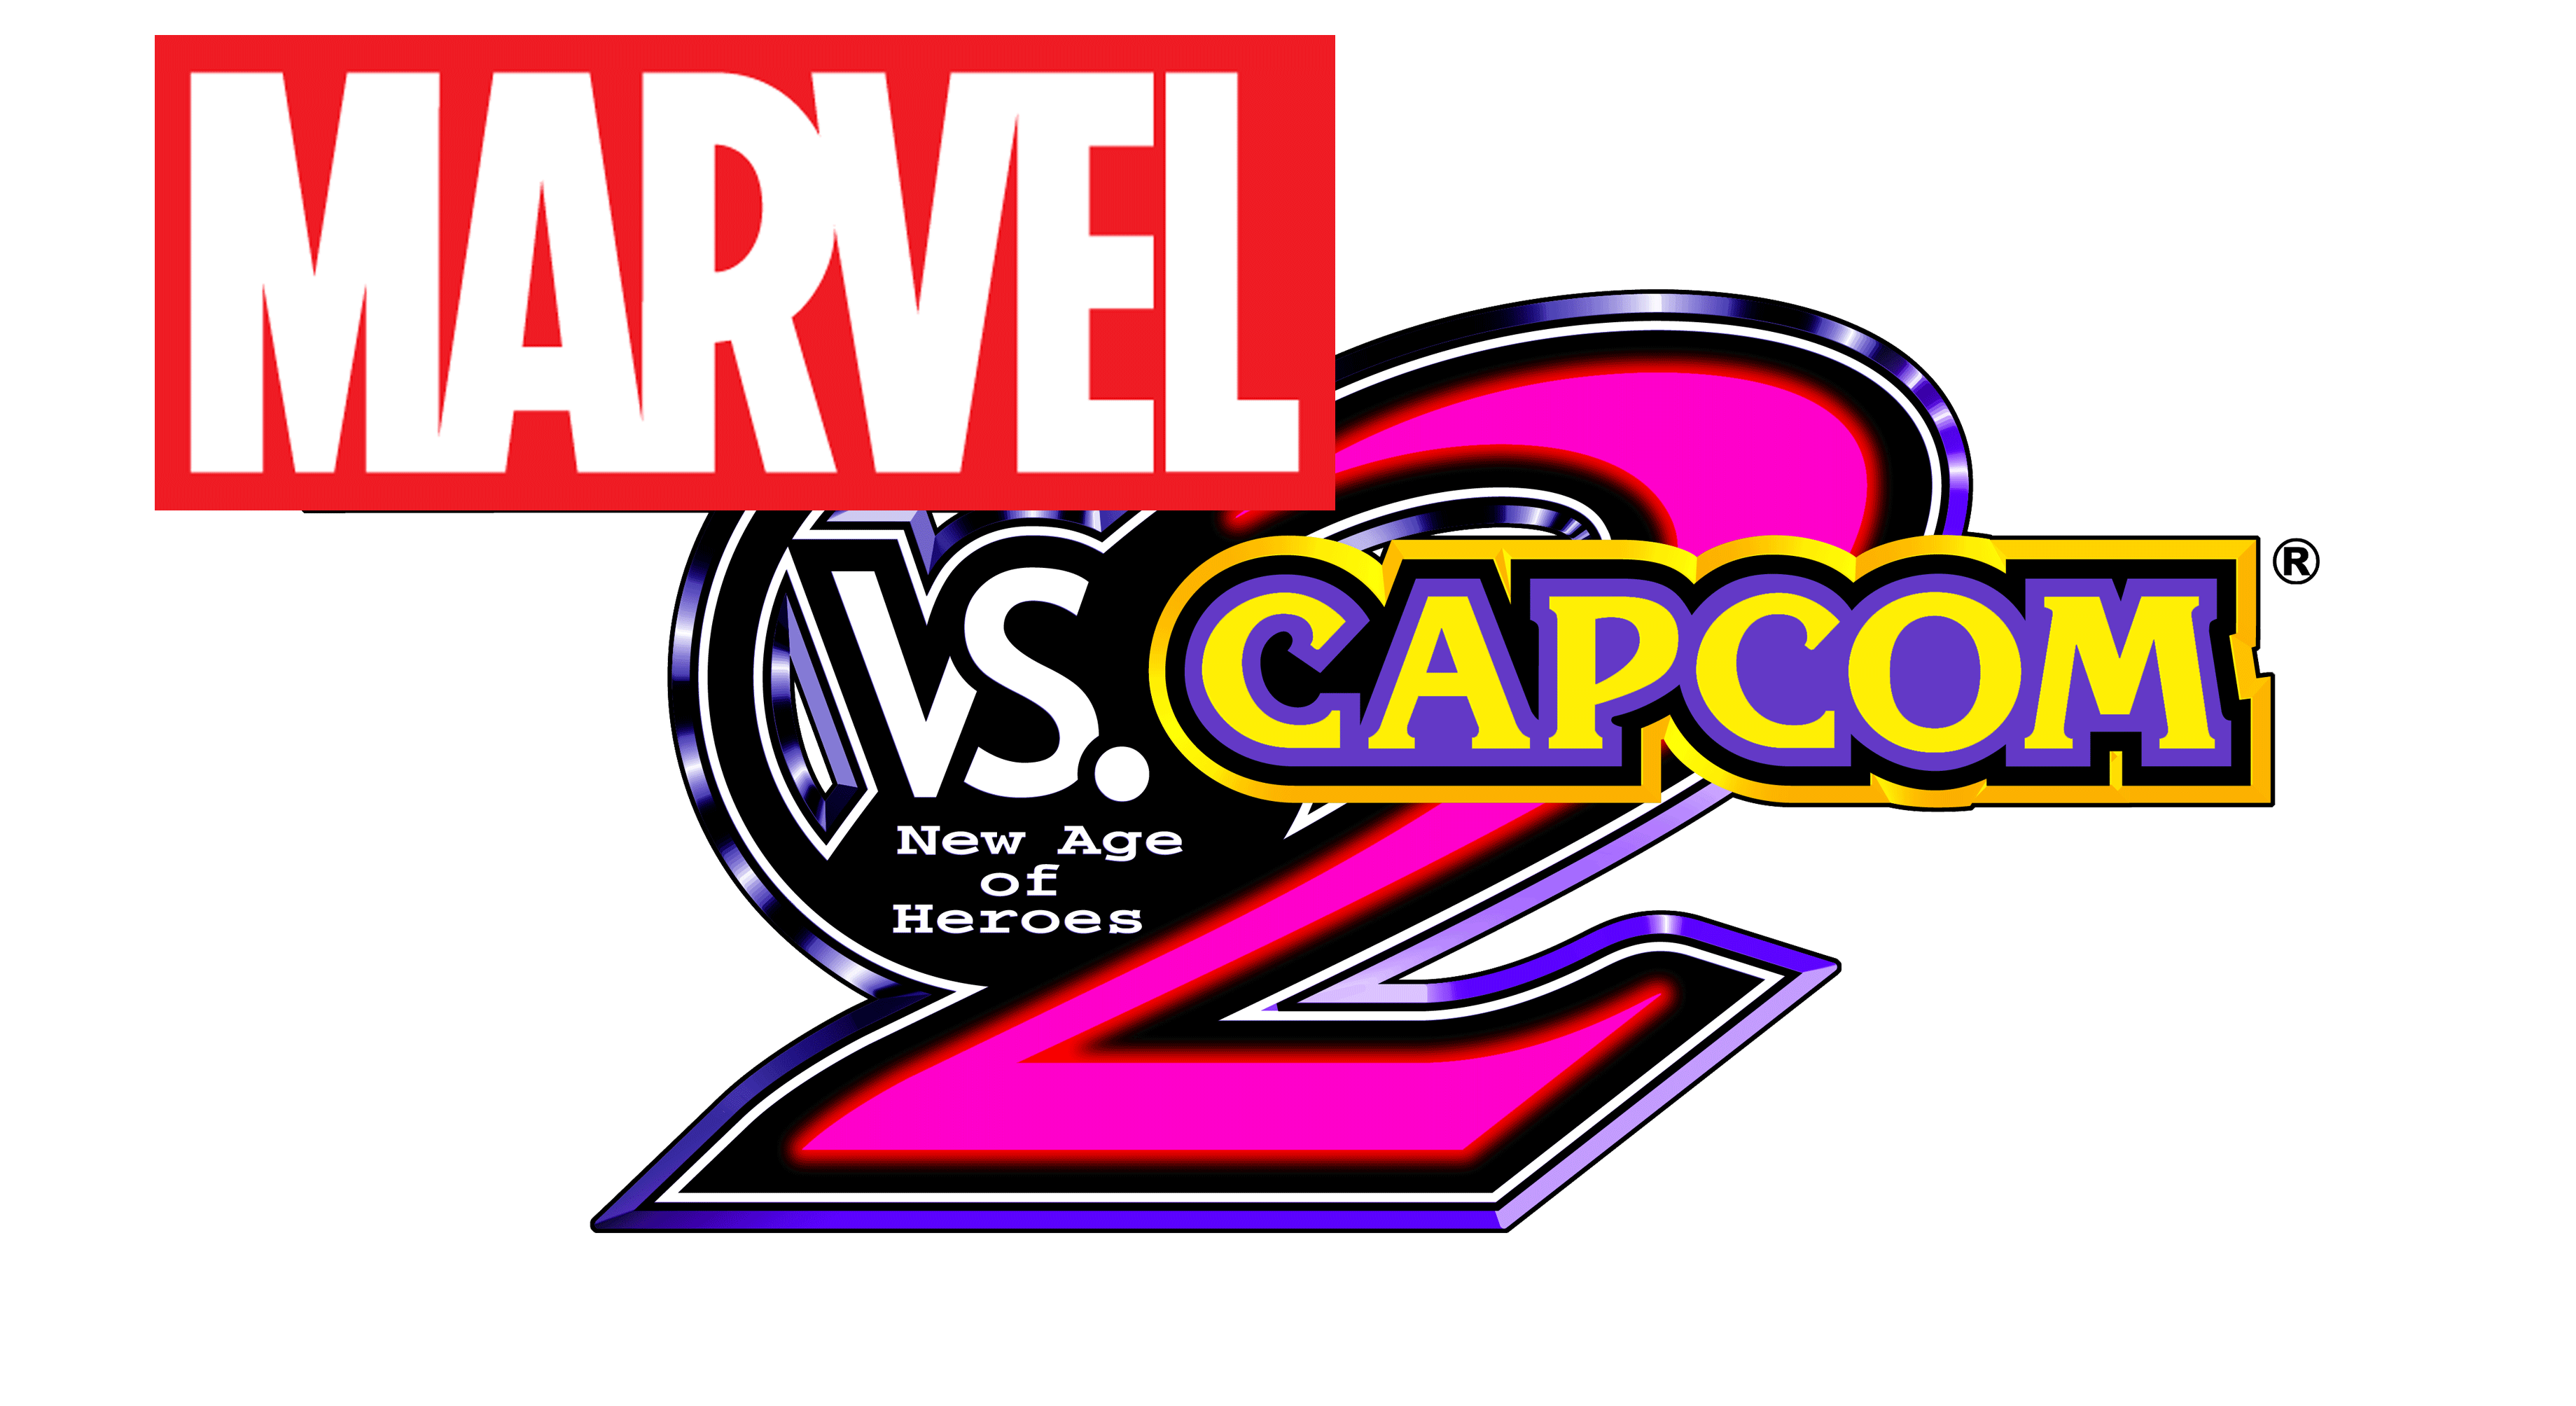 Marvel vs Capcom 2 arrives on iOS this month!